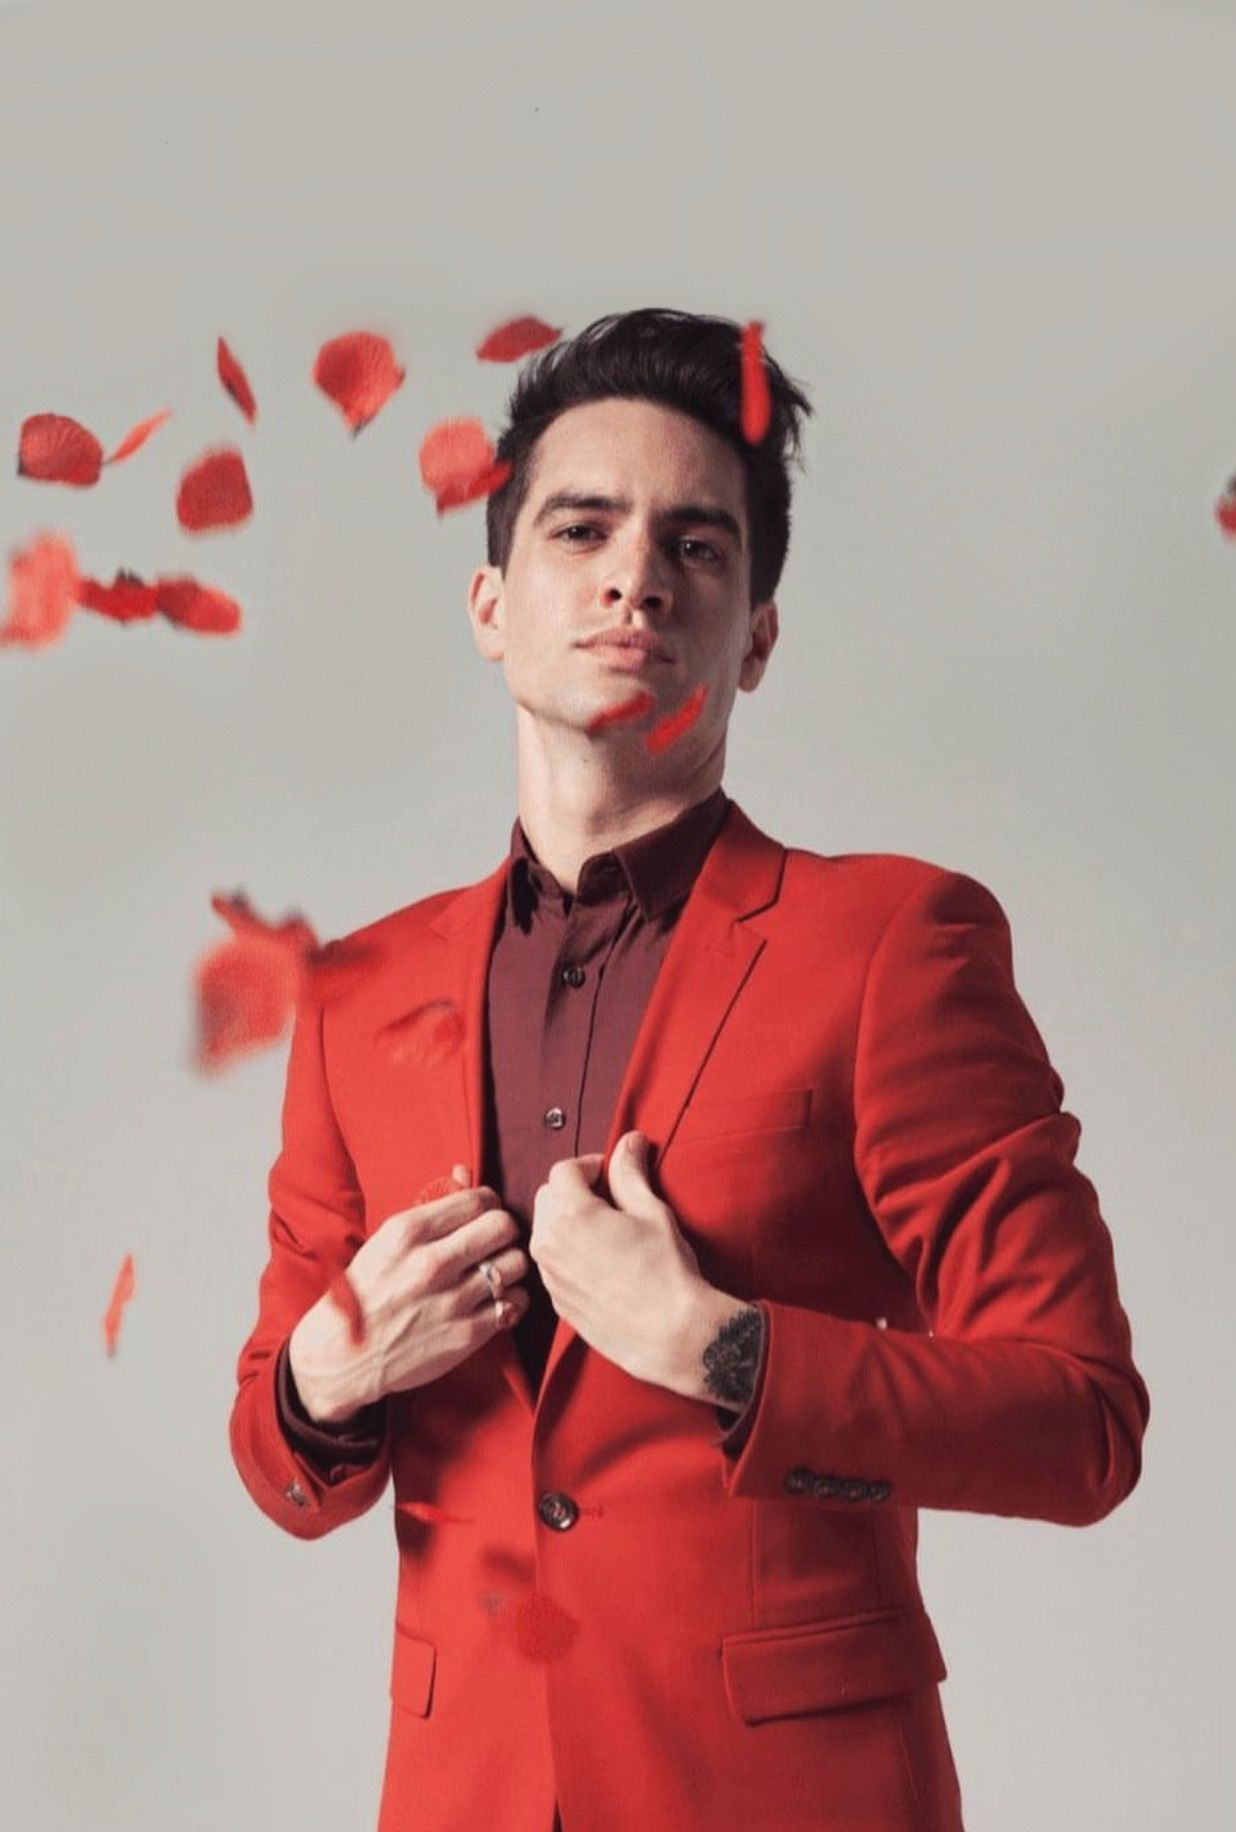 Brendon Urie Normal Forehead